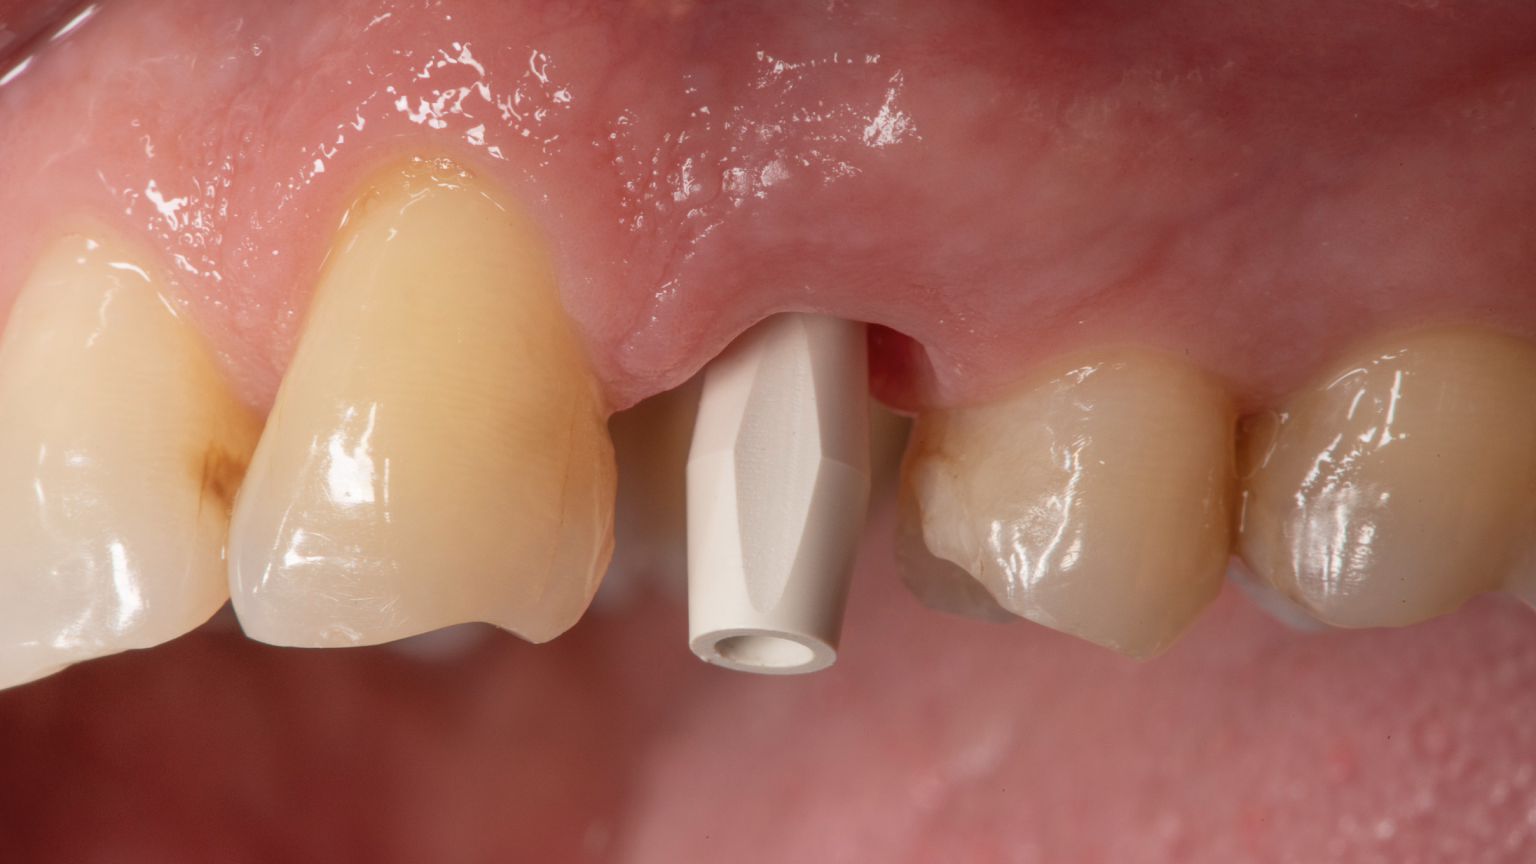 Figs 2-3: Digital implant impressions for single implant – scanbody in place